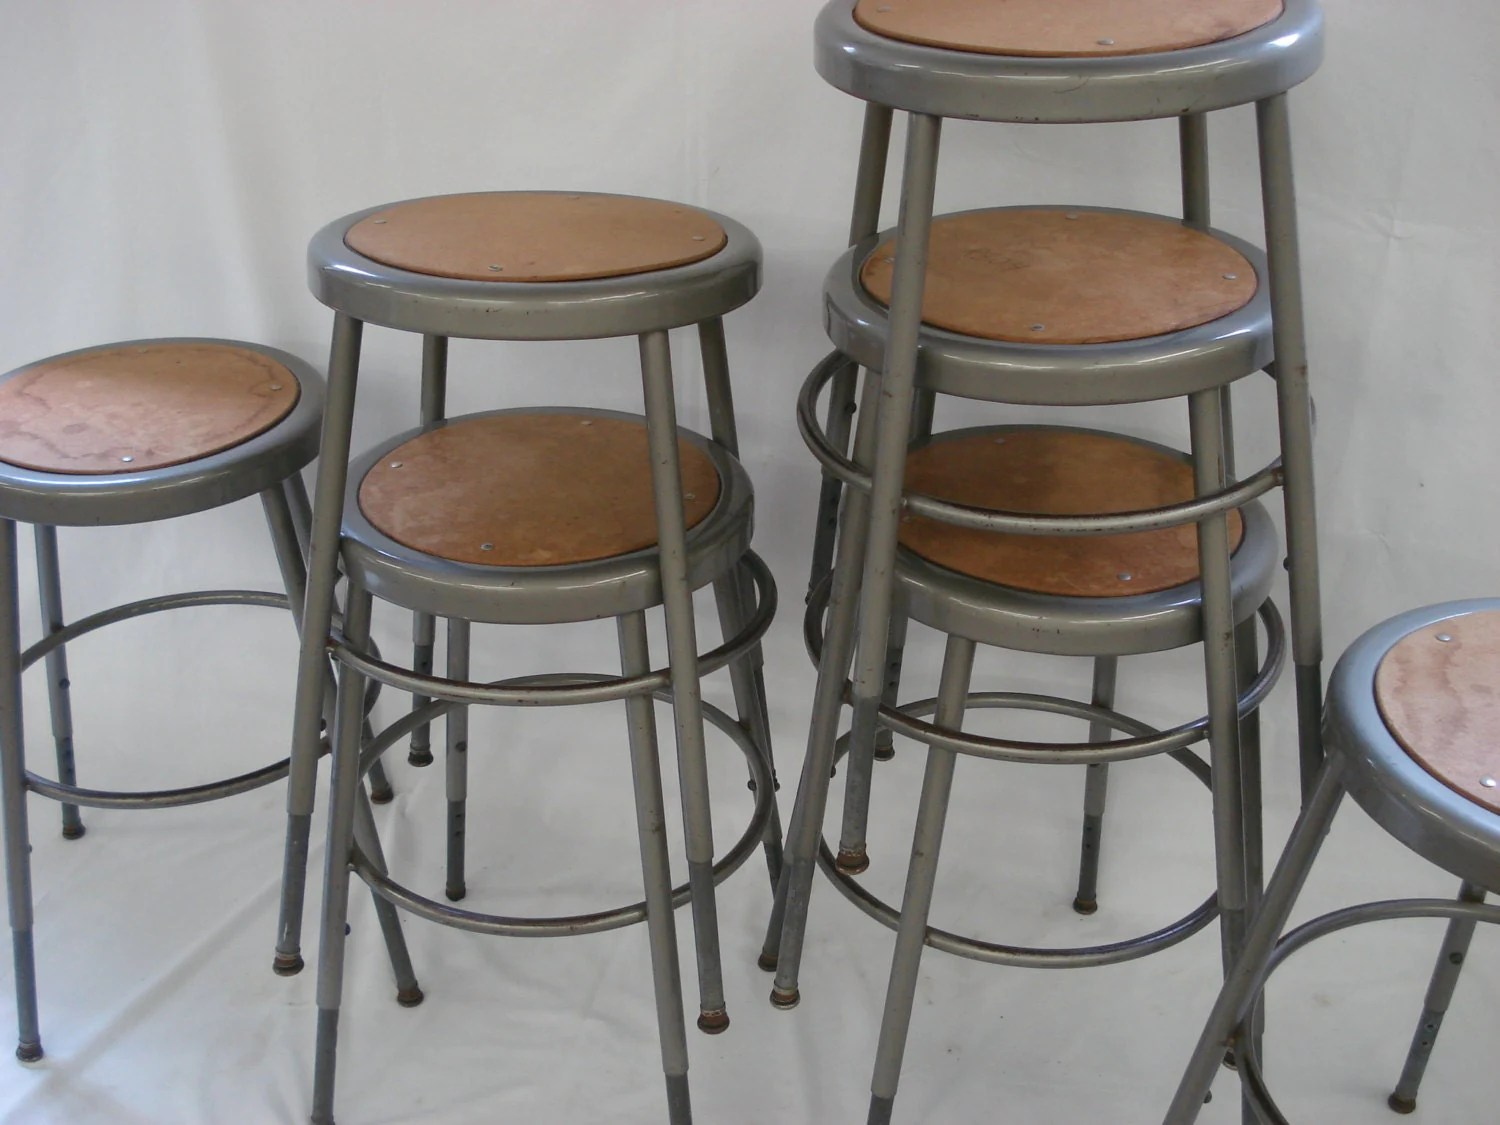 Vintage Krueger Kitchen Stool Industrial School Shop Metal